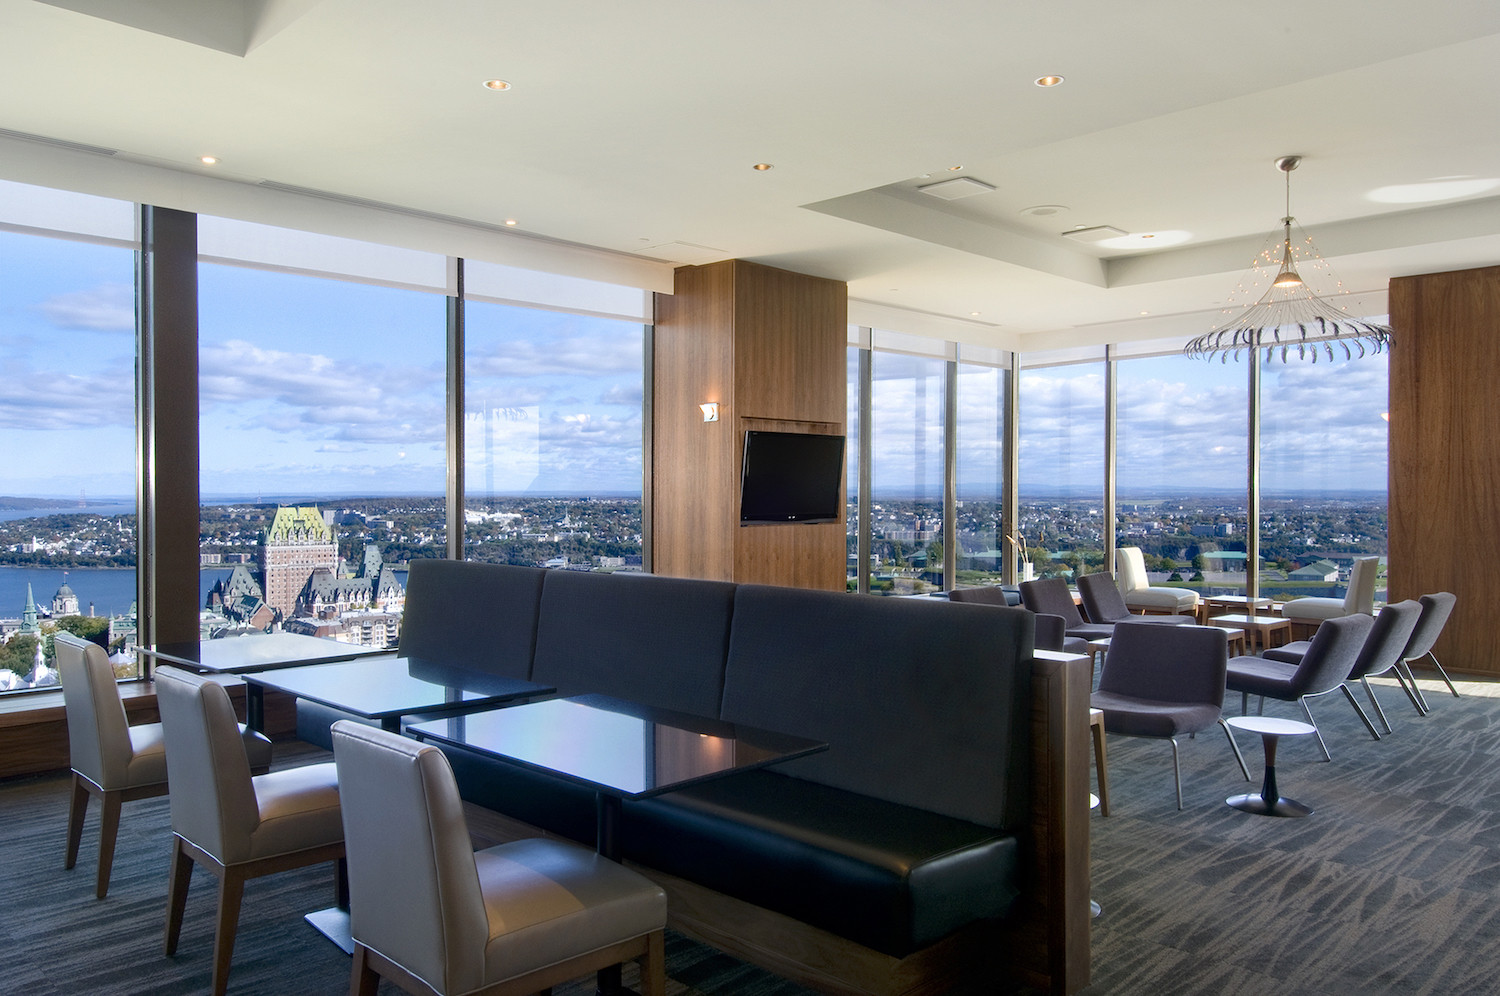 Panoramic executive lounge on the 23rd floor of the hotel.